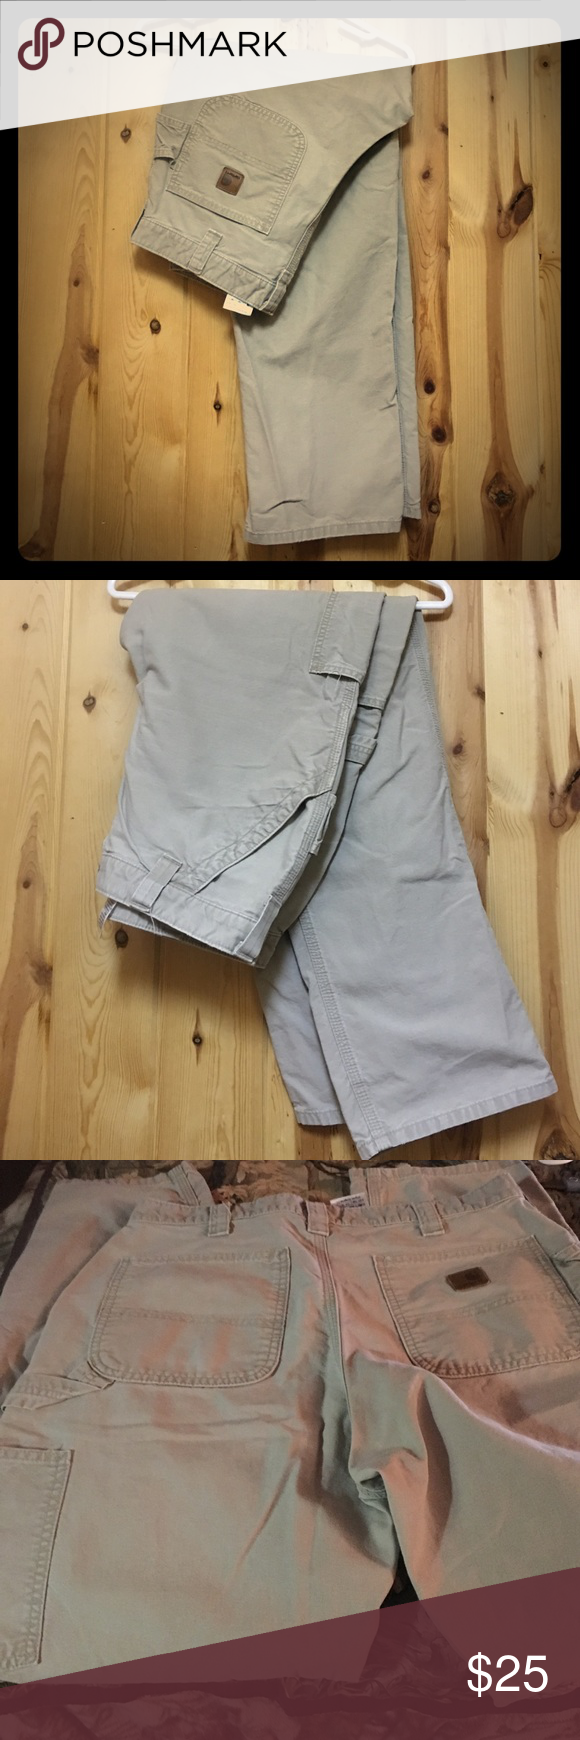 Carhart Cargo Pant 34x32 Men's GUC Carhartt Cargo Pant 34x32 Good Used Condition This pant is durable and made to last.  Multiple tool & Utility pockets Imported Heavy Hauling reenforced Pockets Keen Pants